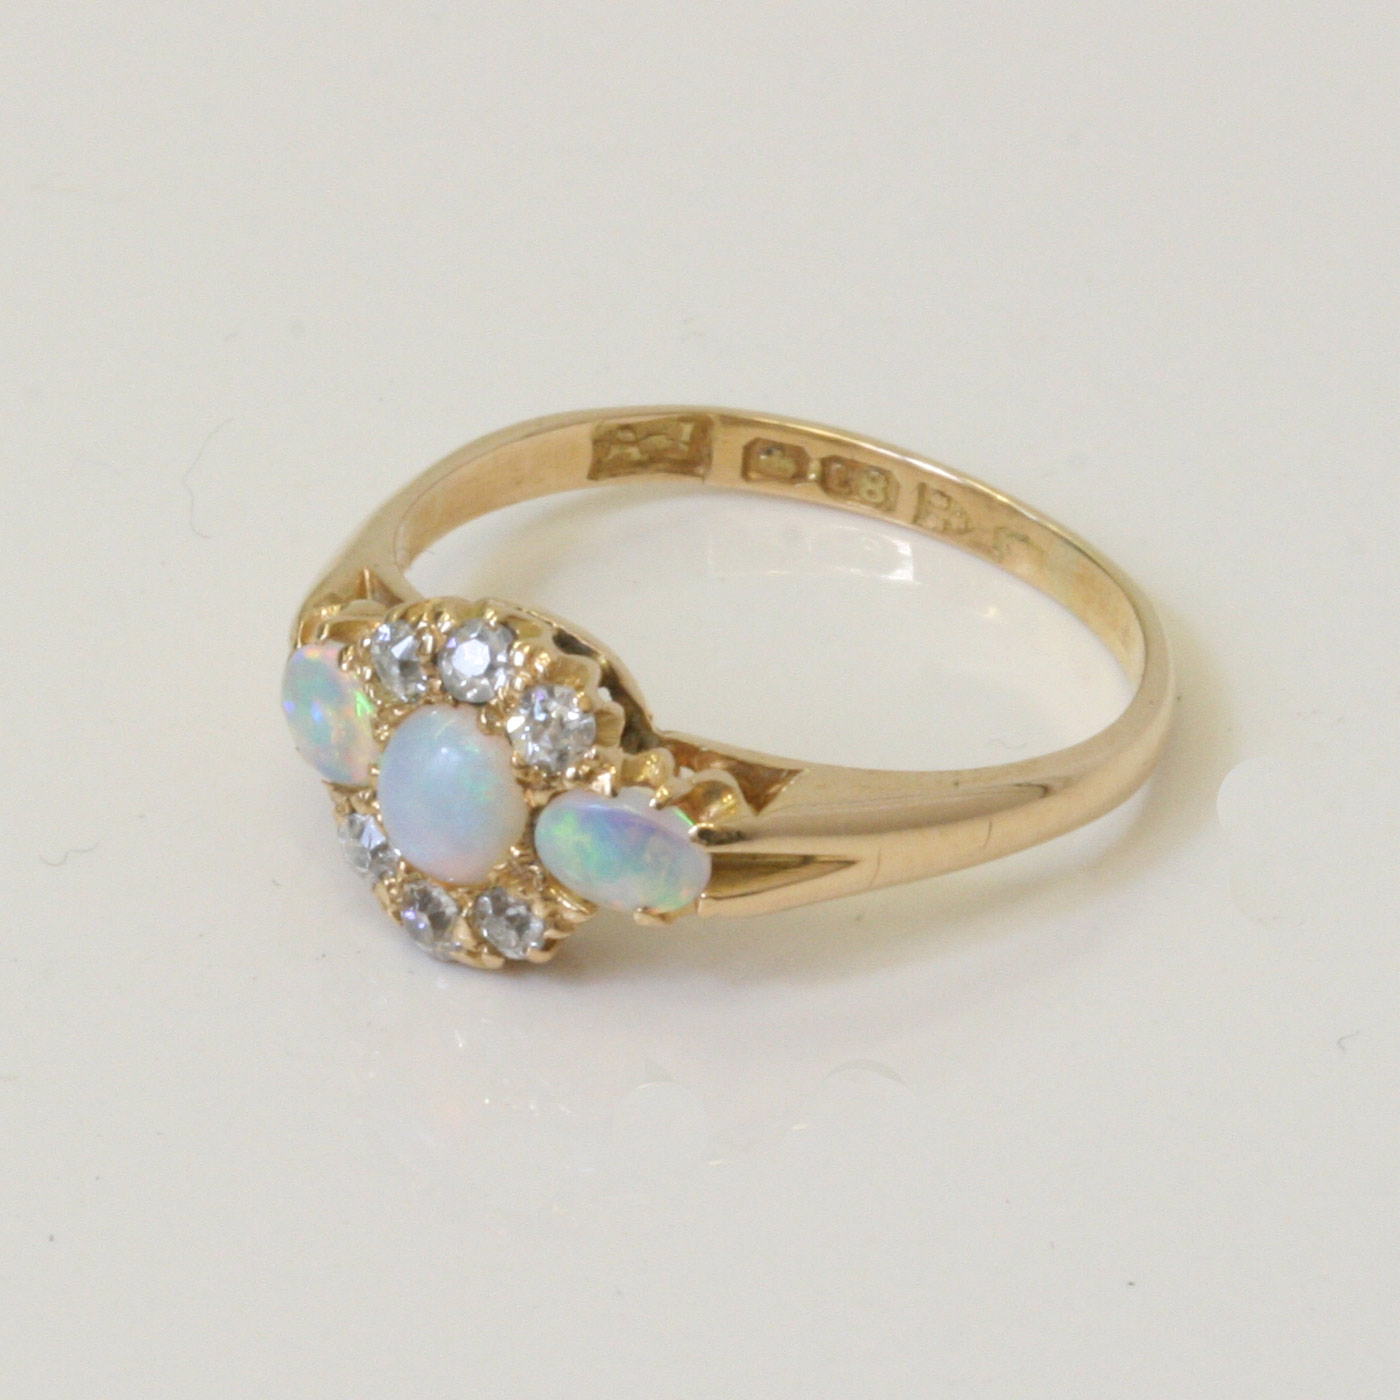 Opal Rings For Sale Sydney